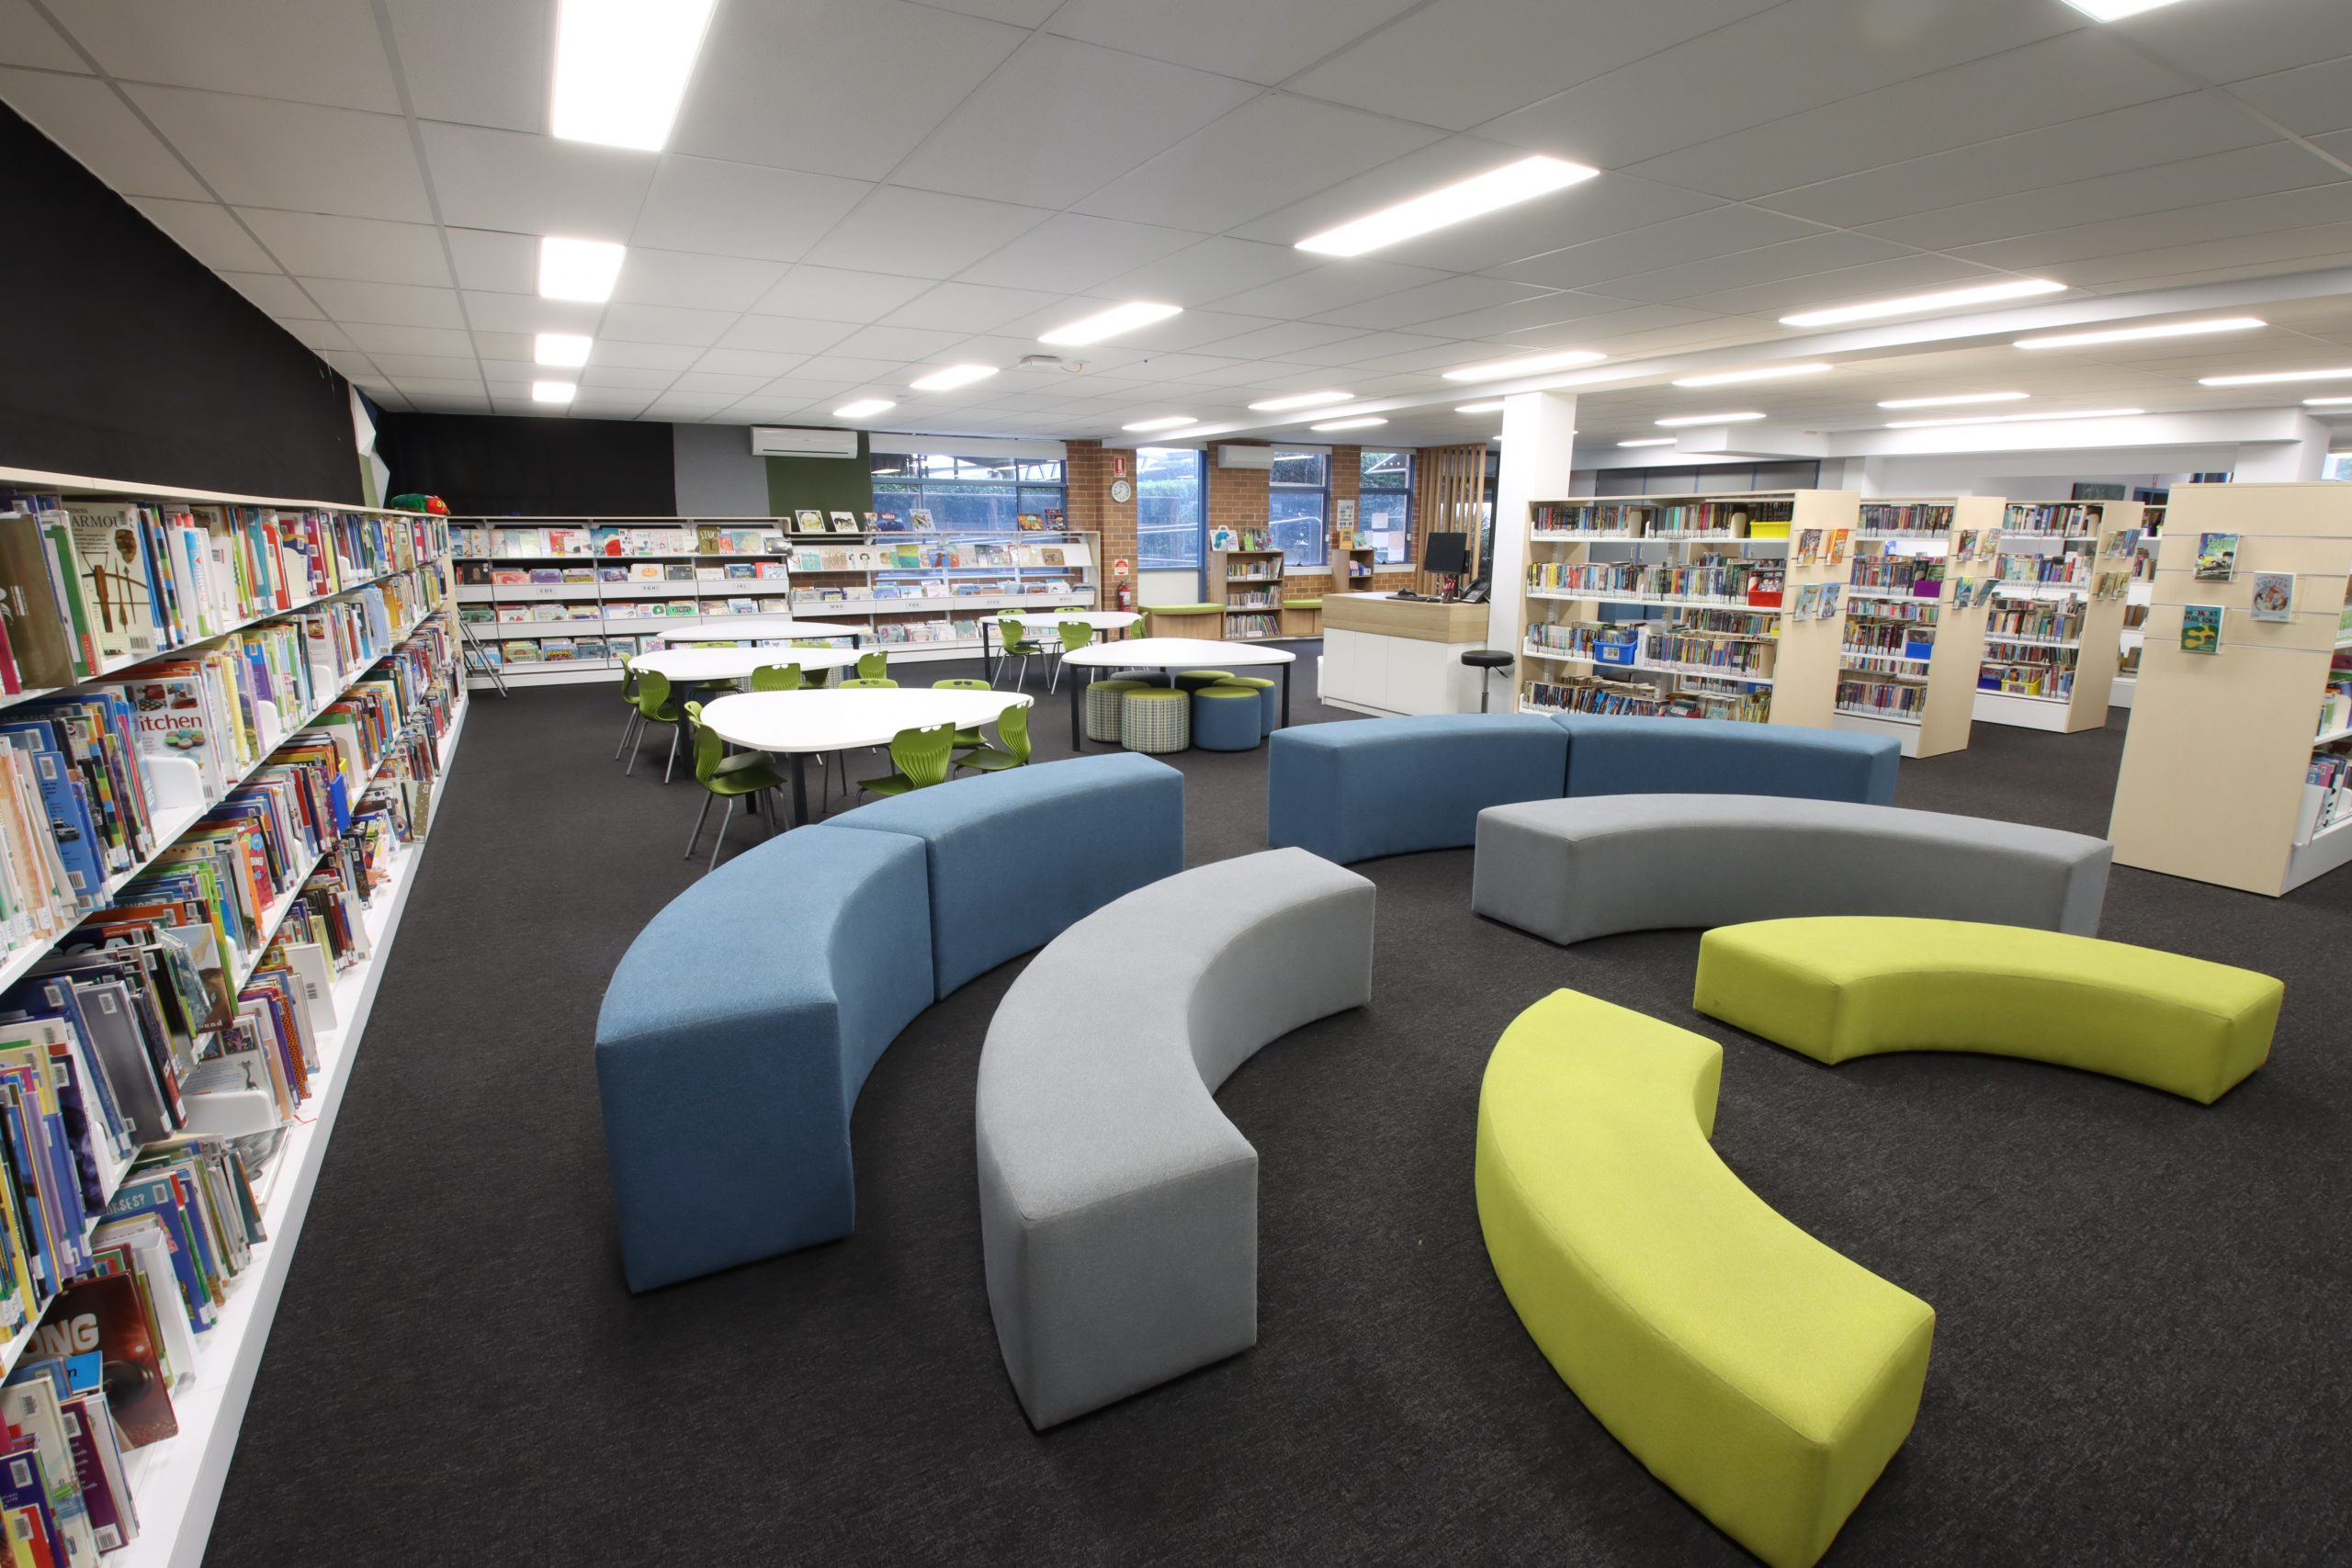 Primary Classroom in a Library